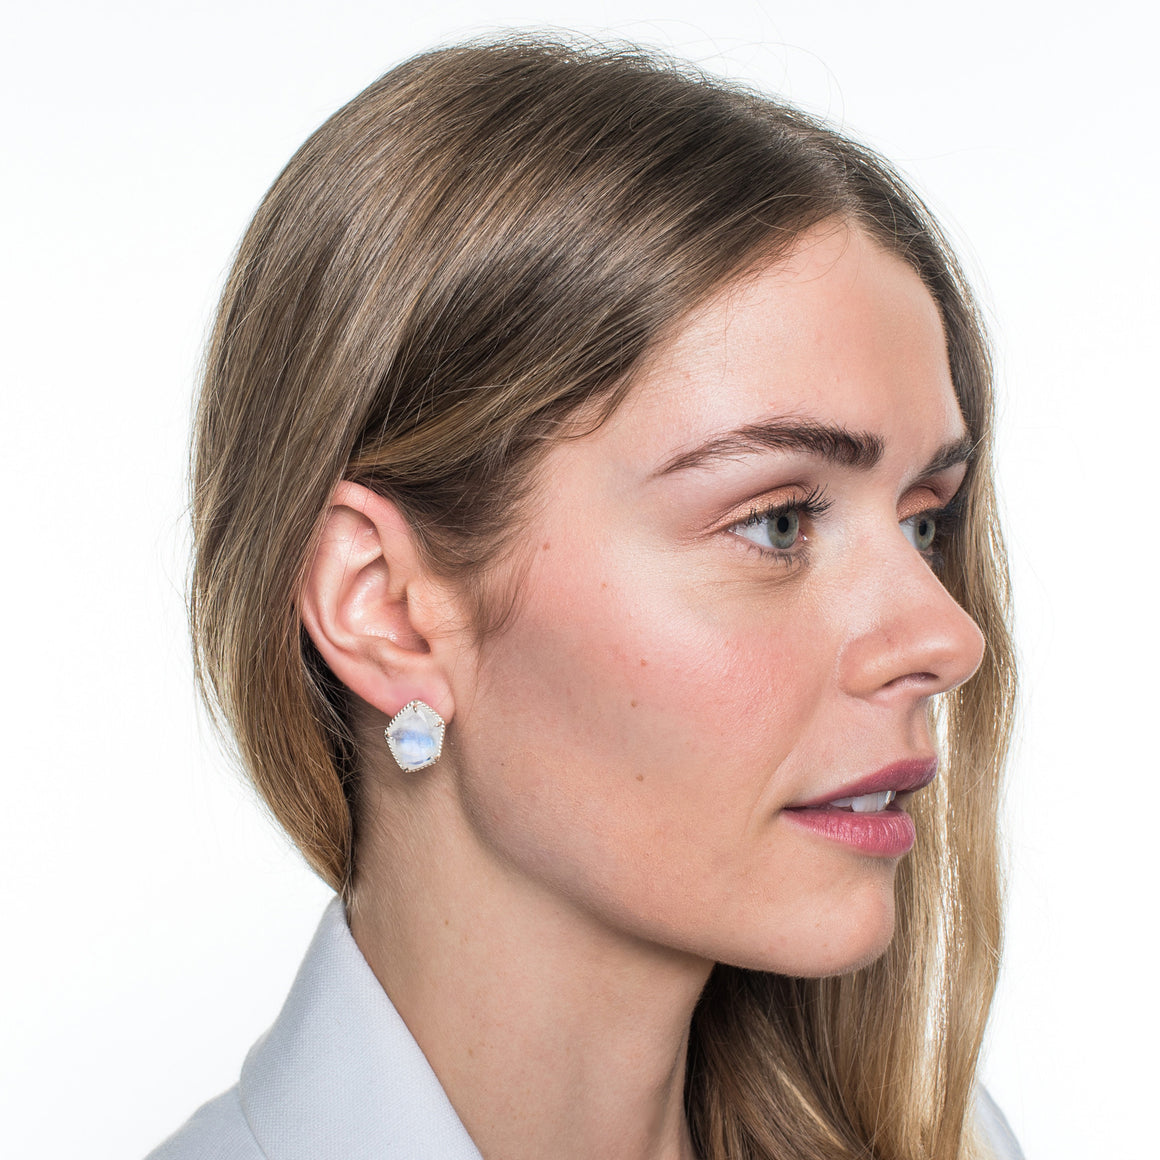 HONOUR STUD EARRINGS - RAINBOW MOONSTONE & SILVER